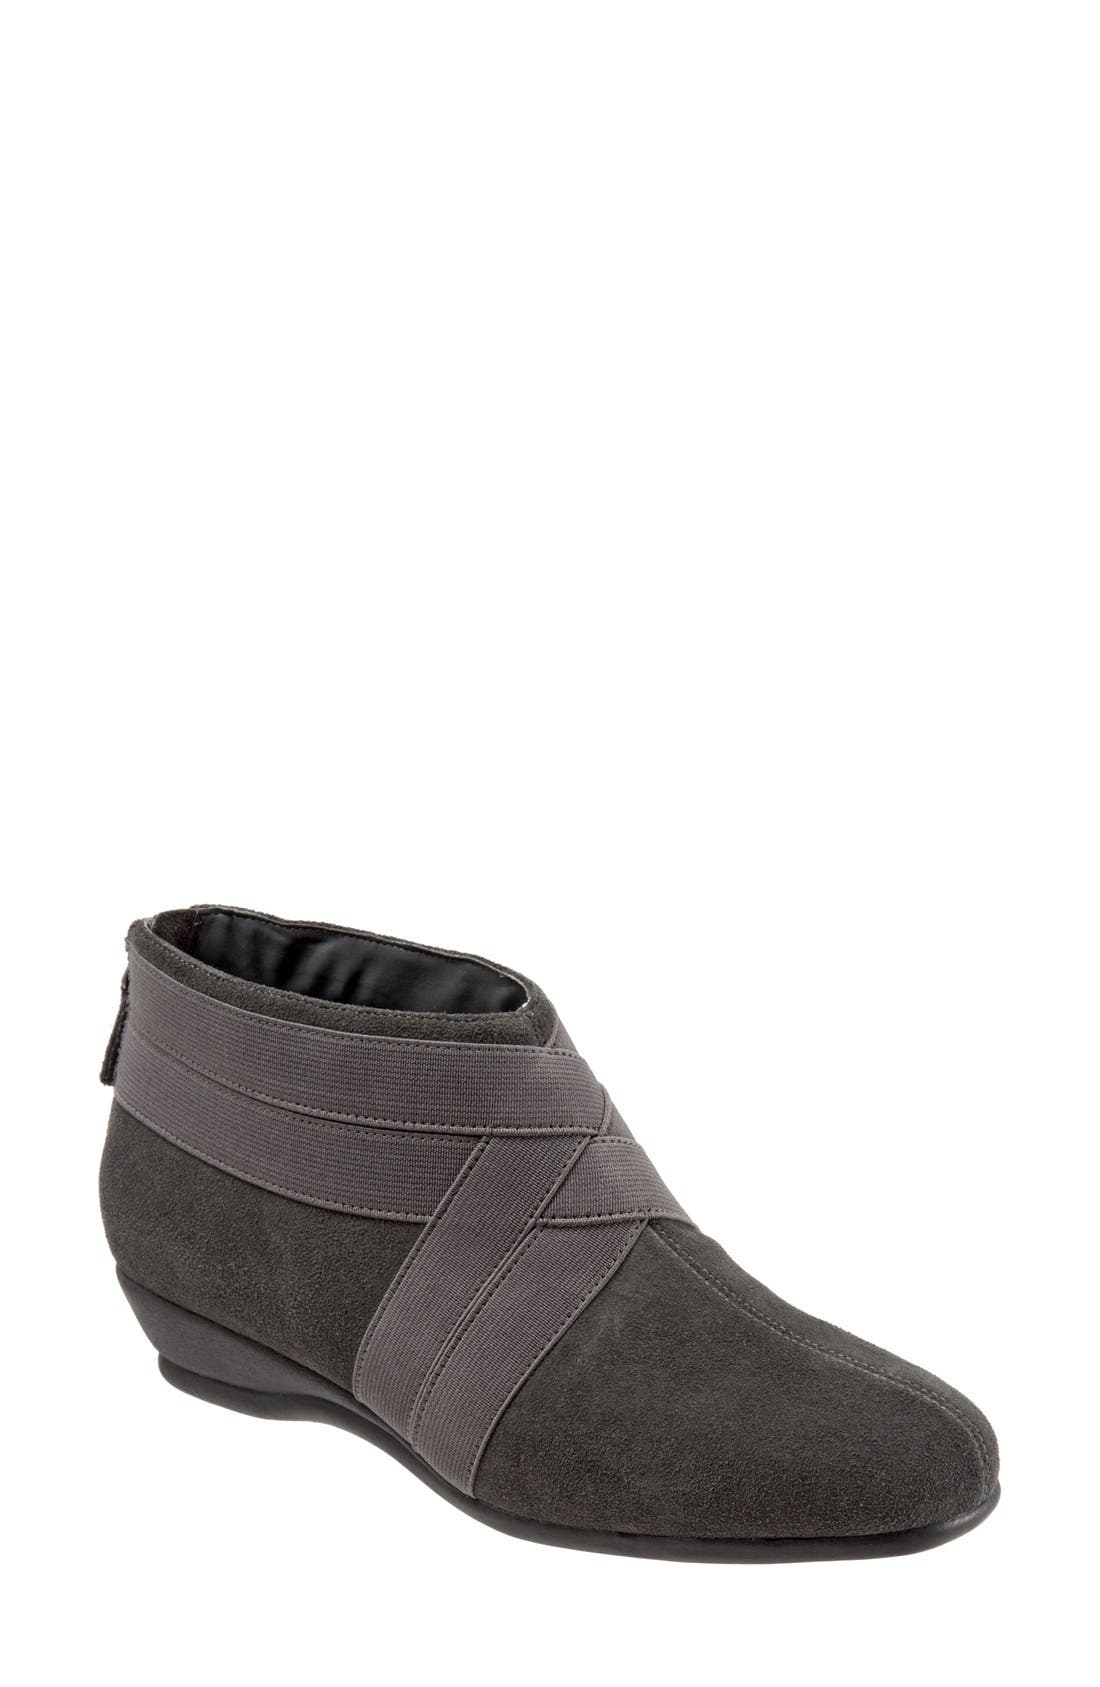 Trotters 'Latch' Bootie (Women)